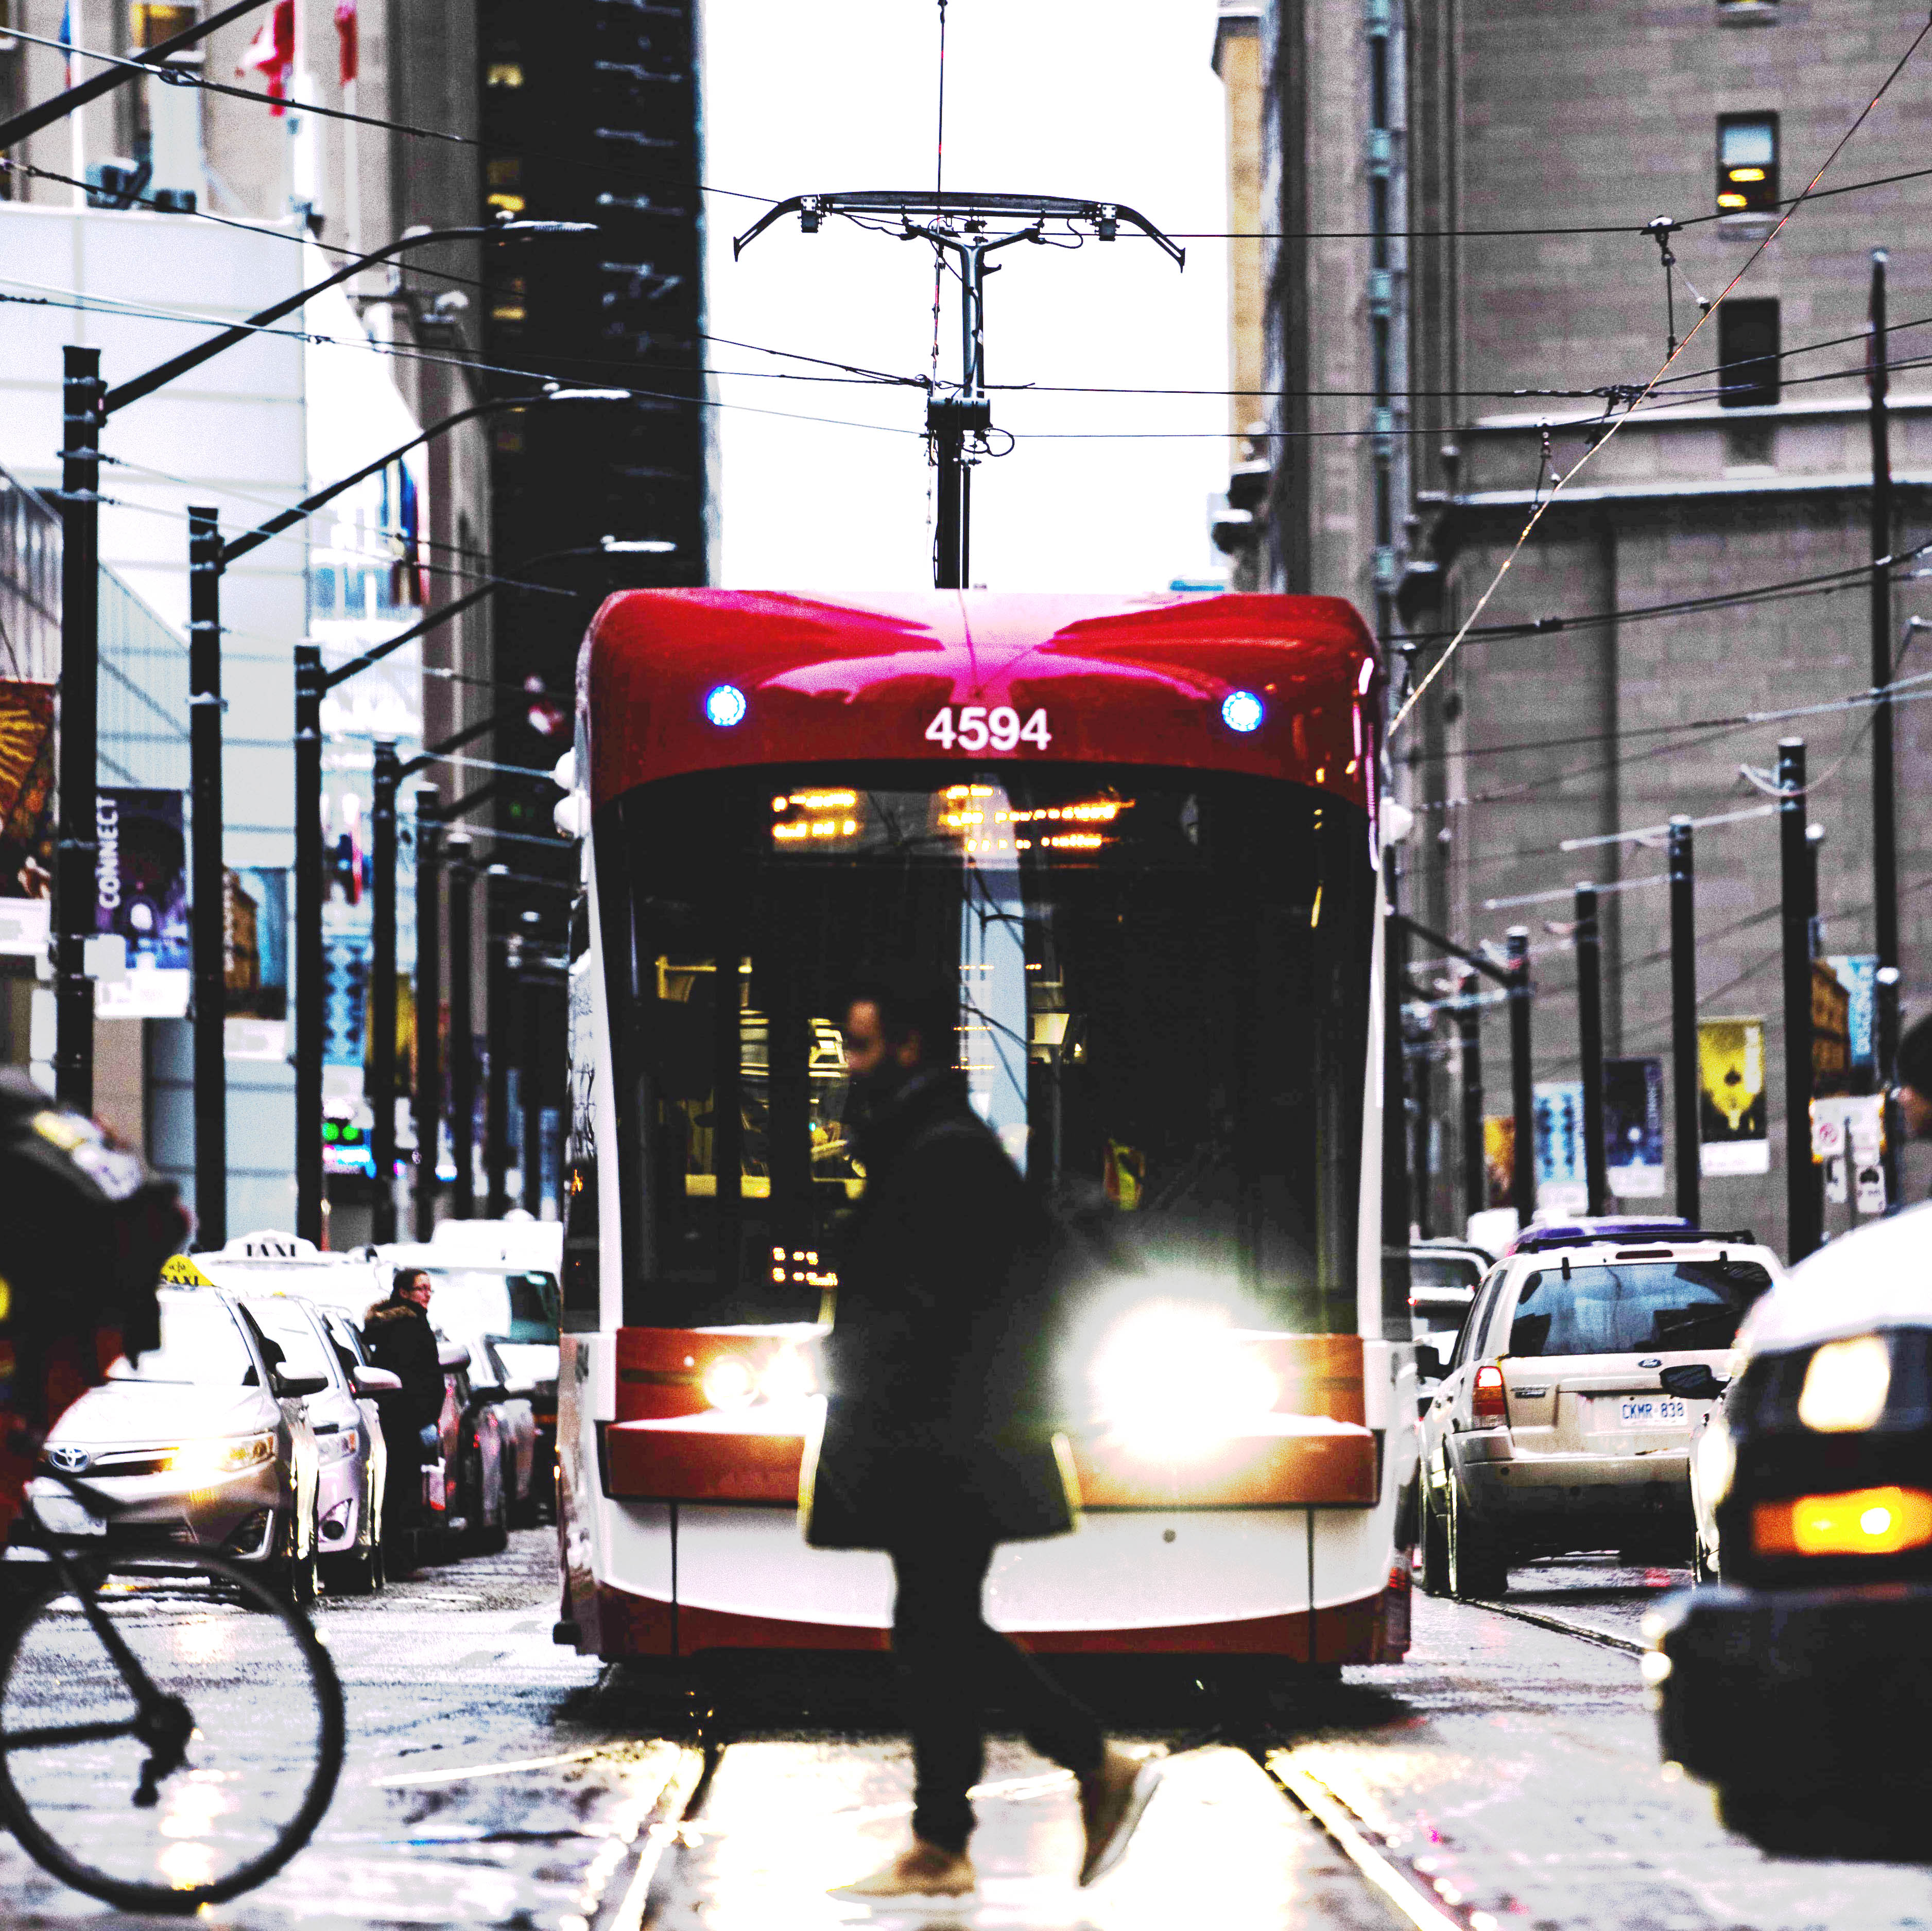 A pedestrian passing by in front of a TTC street car during daytime.